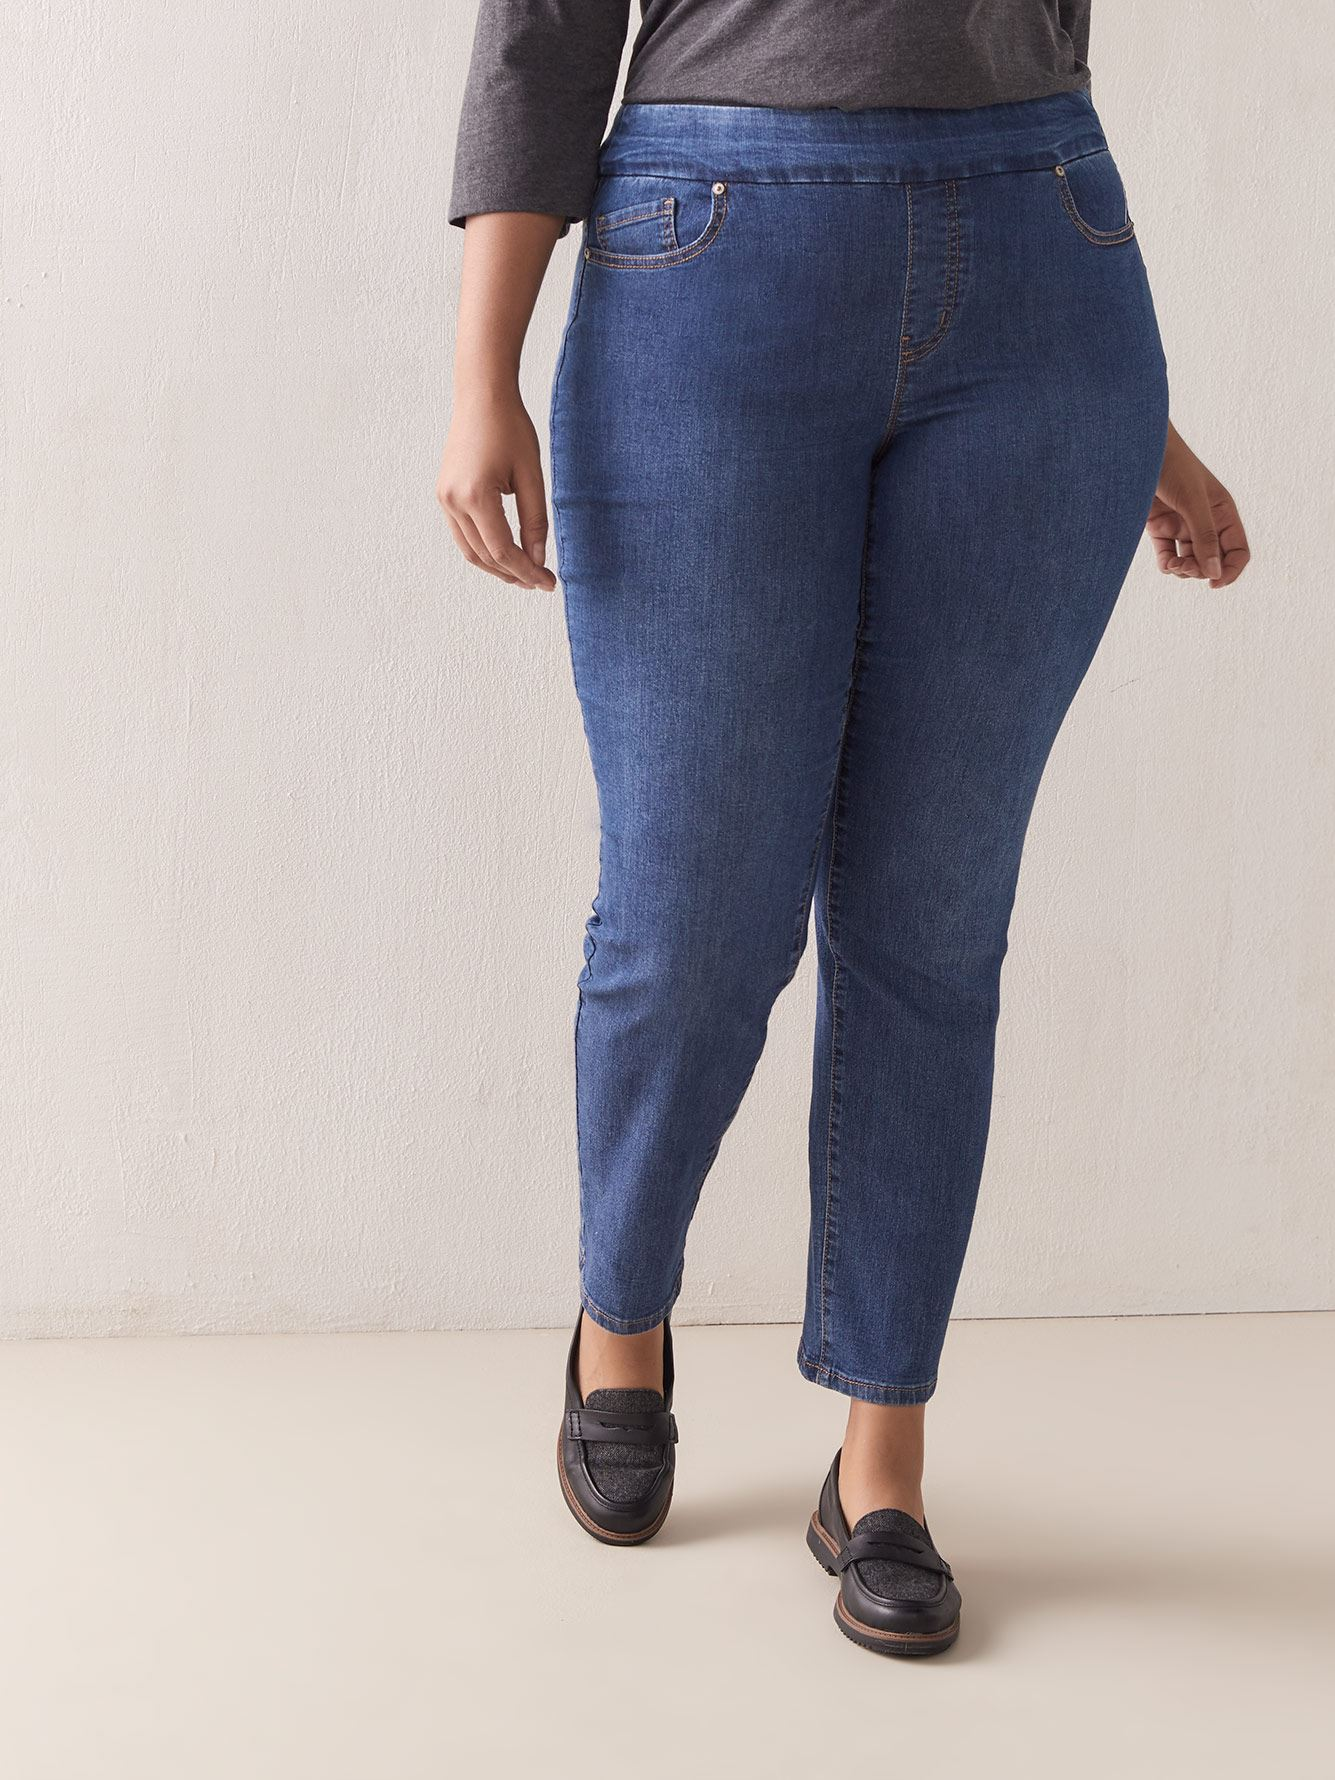 Universal Fit,Tall, Straight Leg Jeans - d/C JEANS